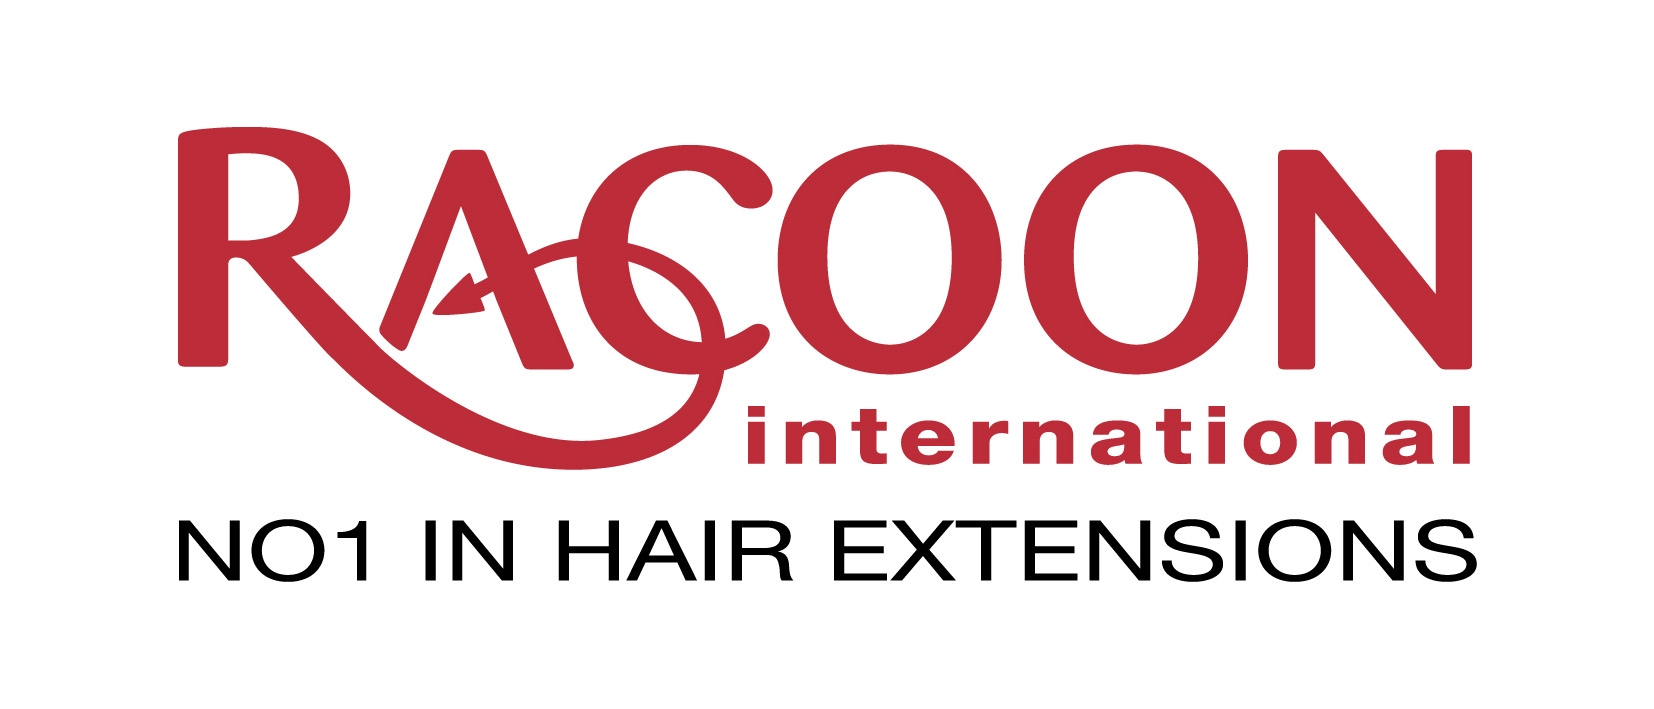 Racoon International - NEW* Racoon International is the number-one supplier of high-quality, glamorous human hair extensions to salons, session stylists, global partners and the public.